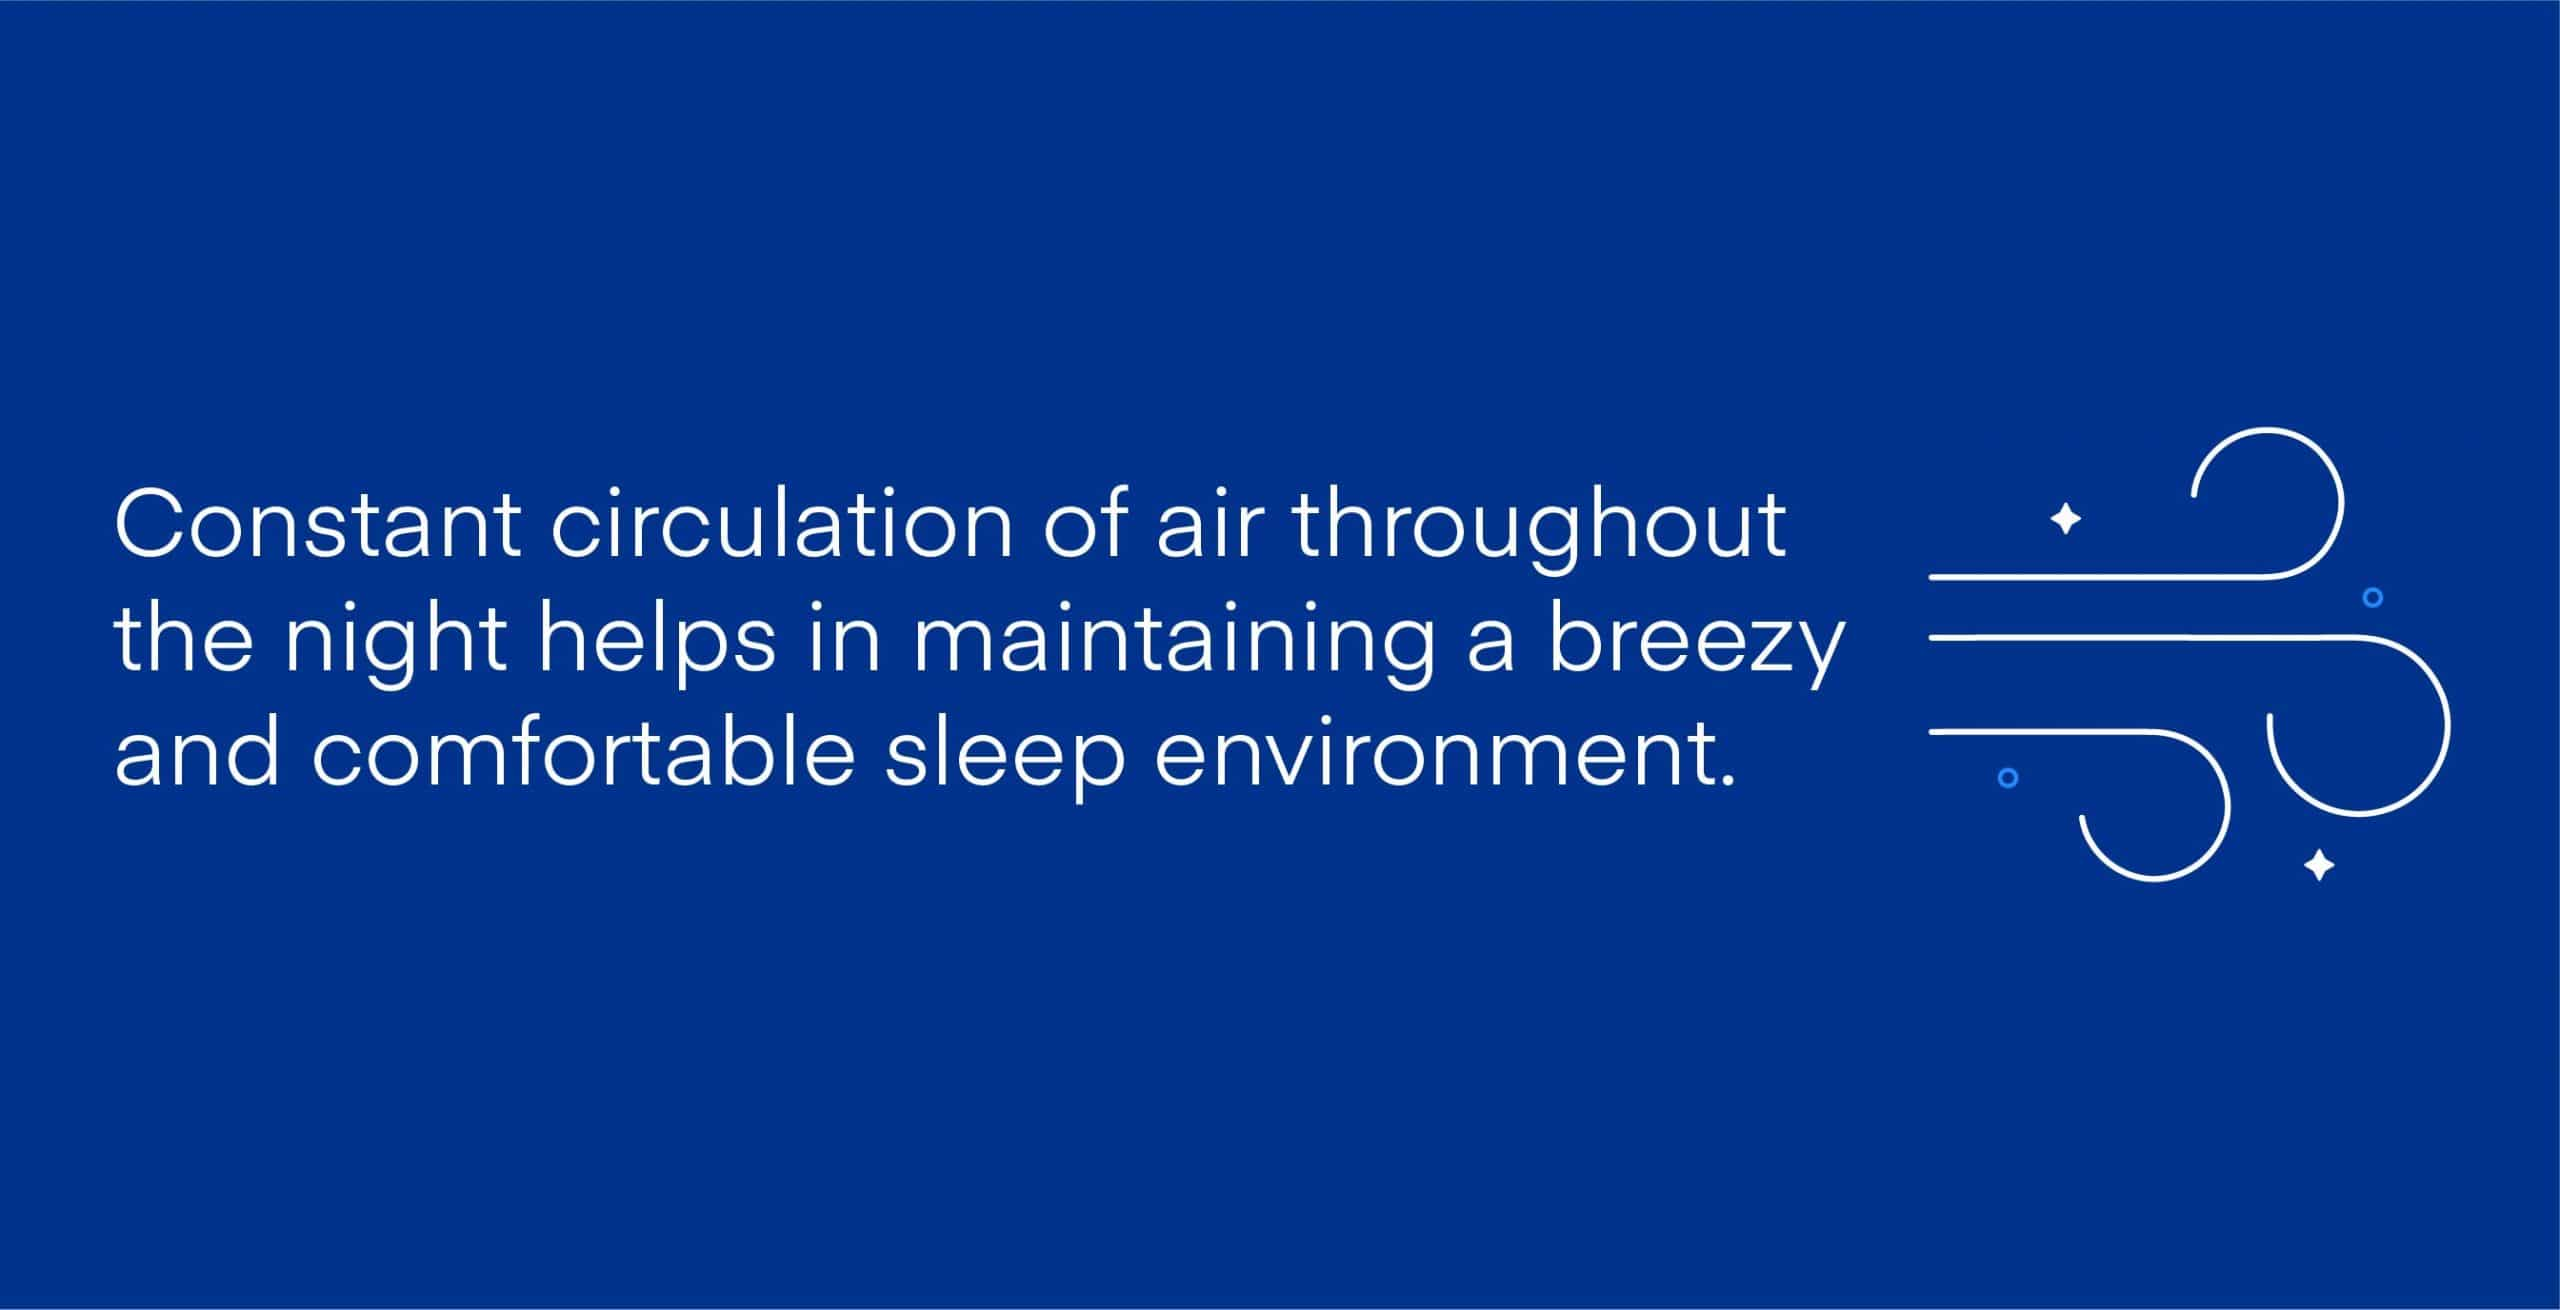 Is Sleeping with Fan On Bad for Health?